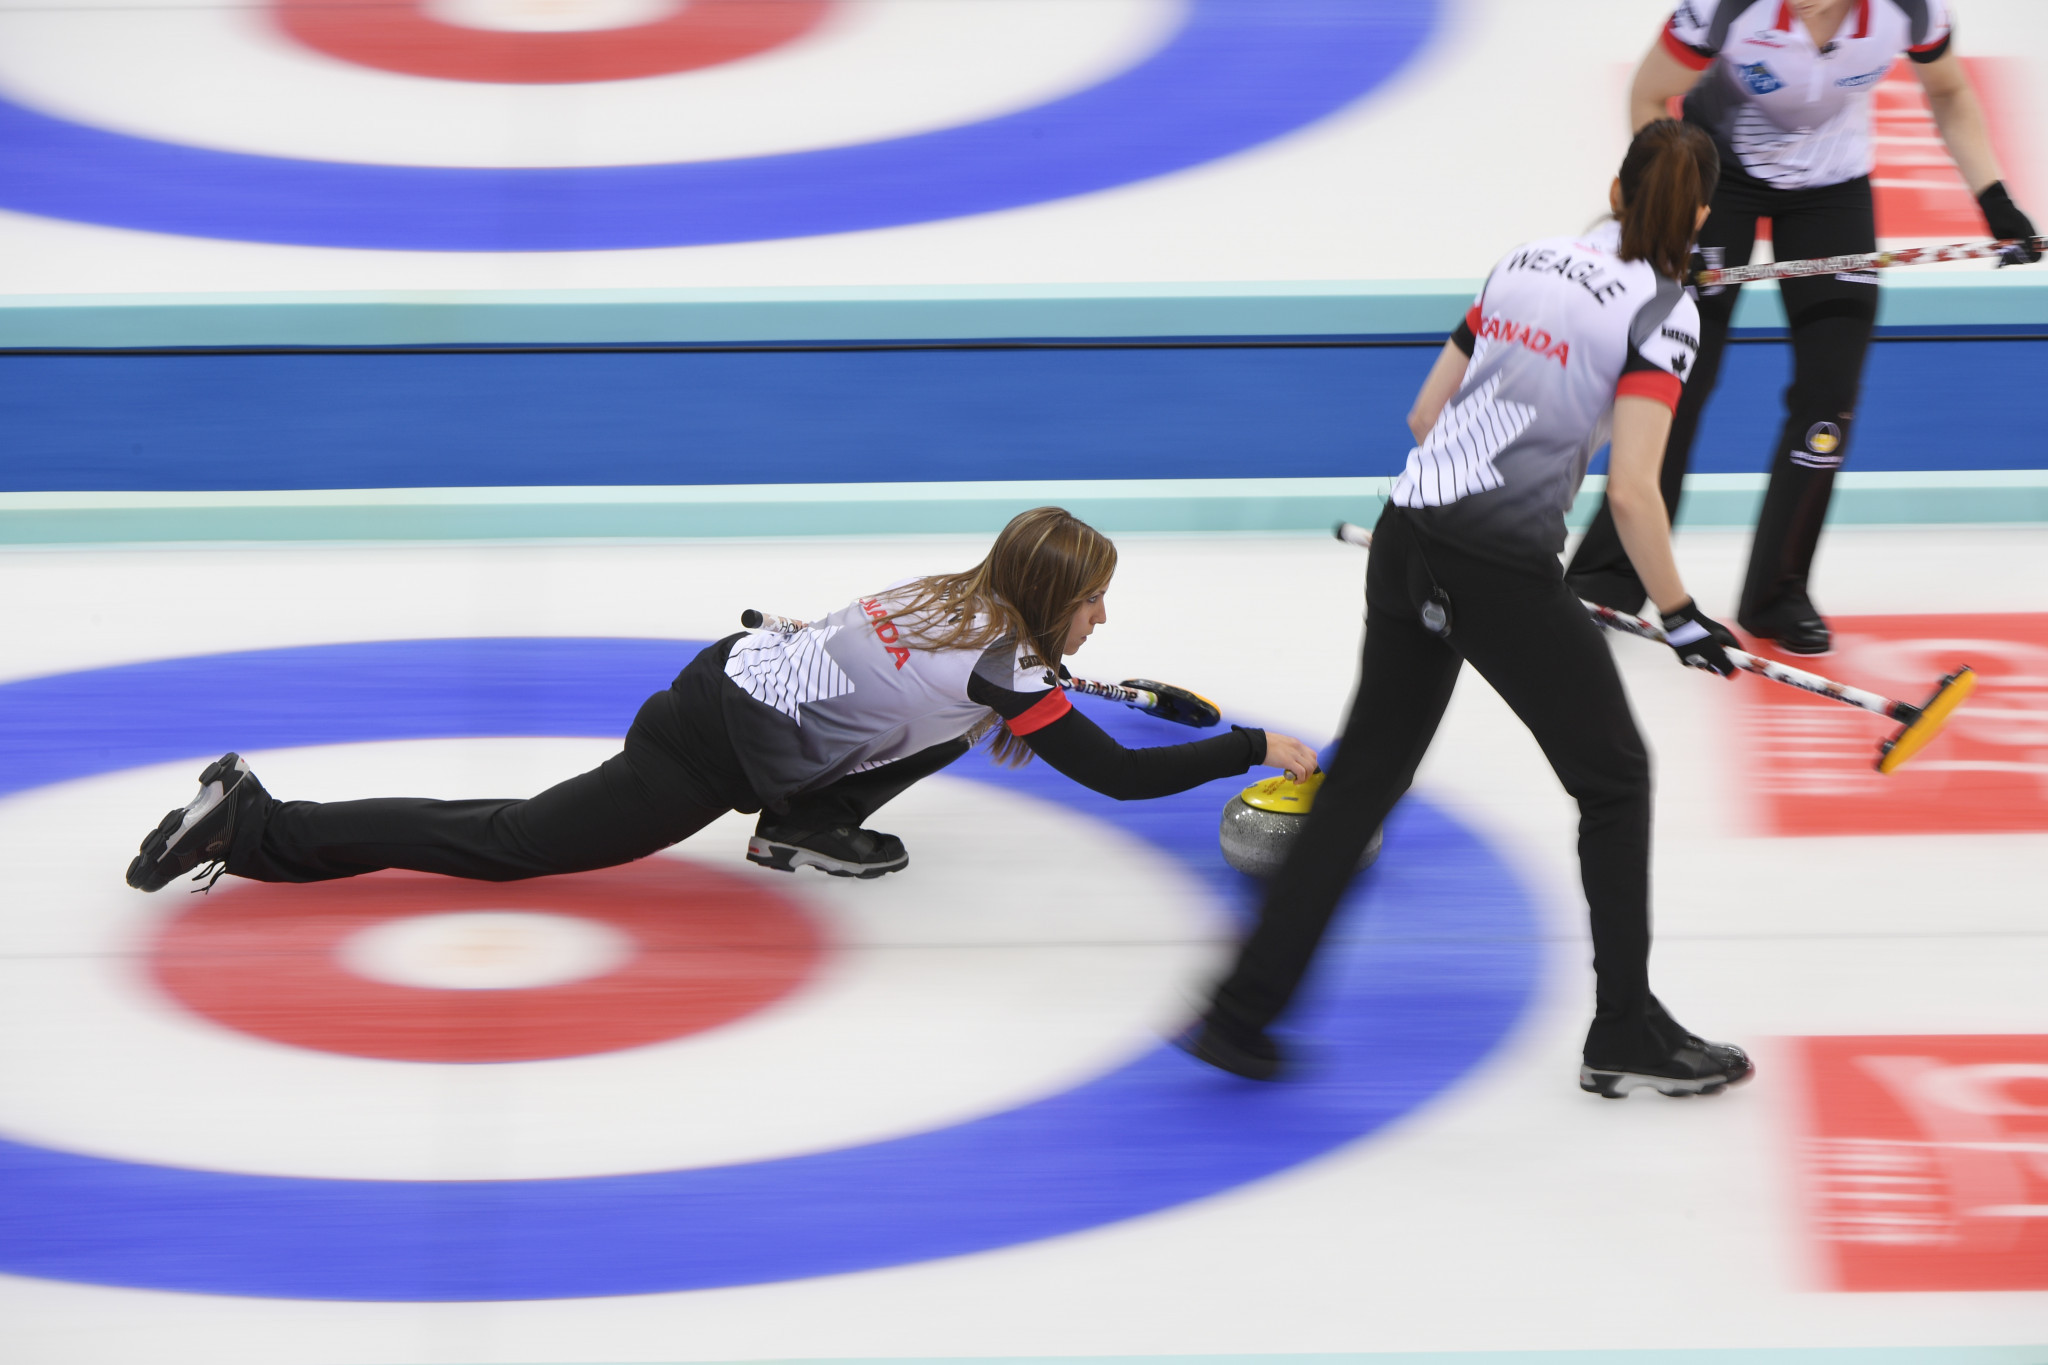 Rachel Homan skipped Canada's women's team to gold at this year's World Championships in Beijing ©Getty Images